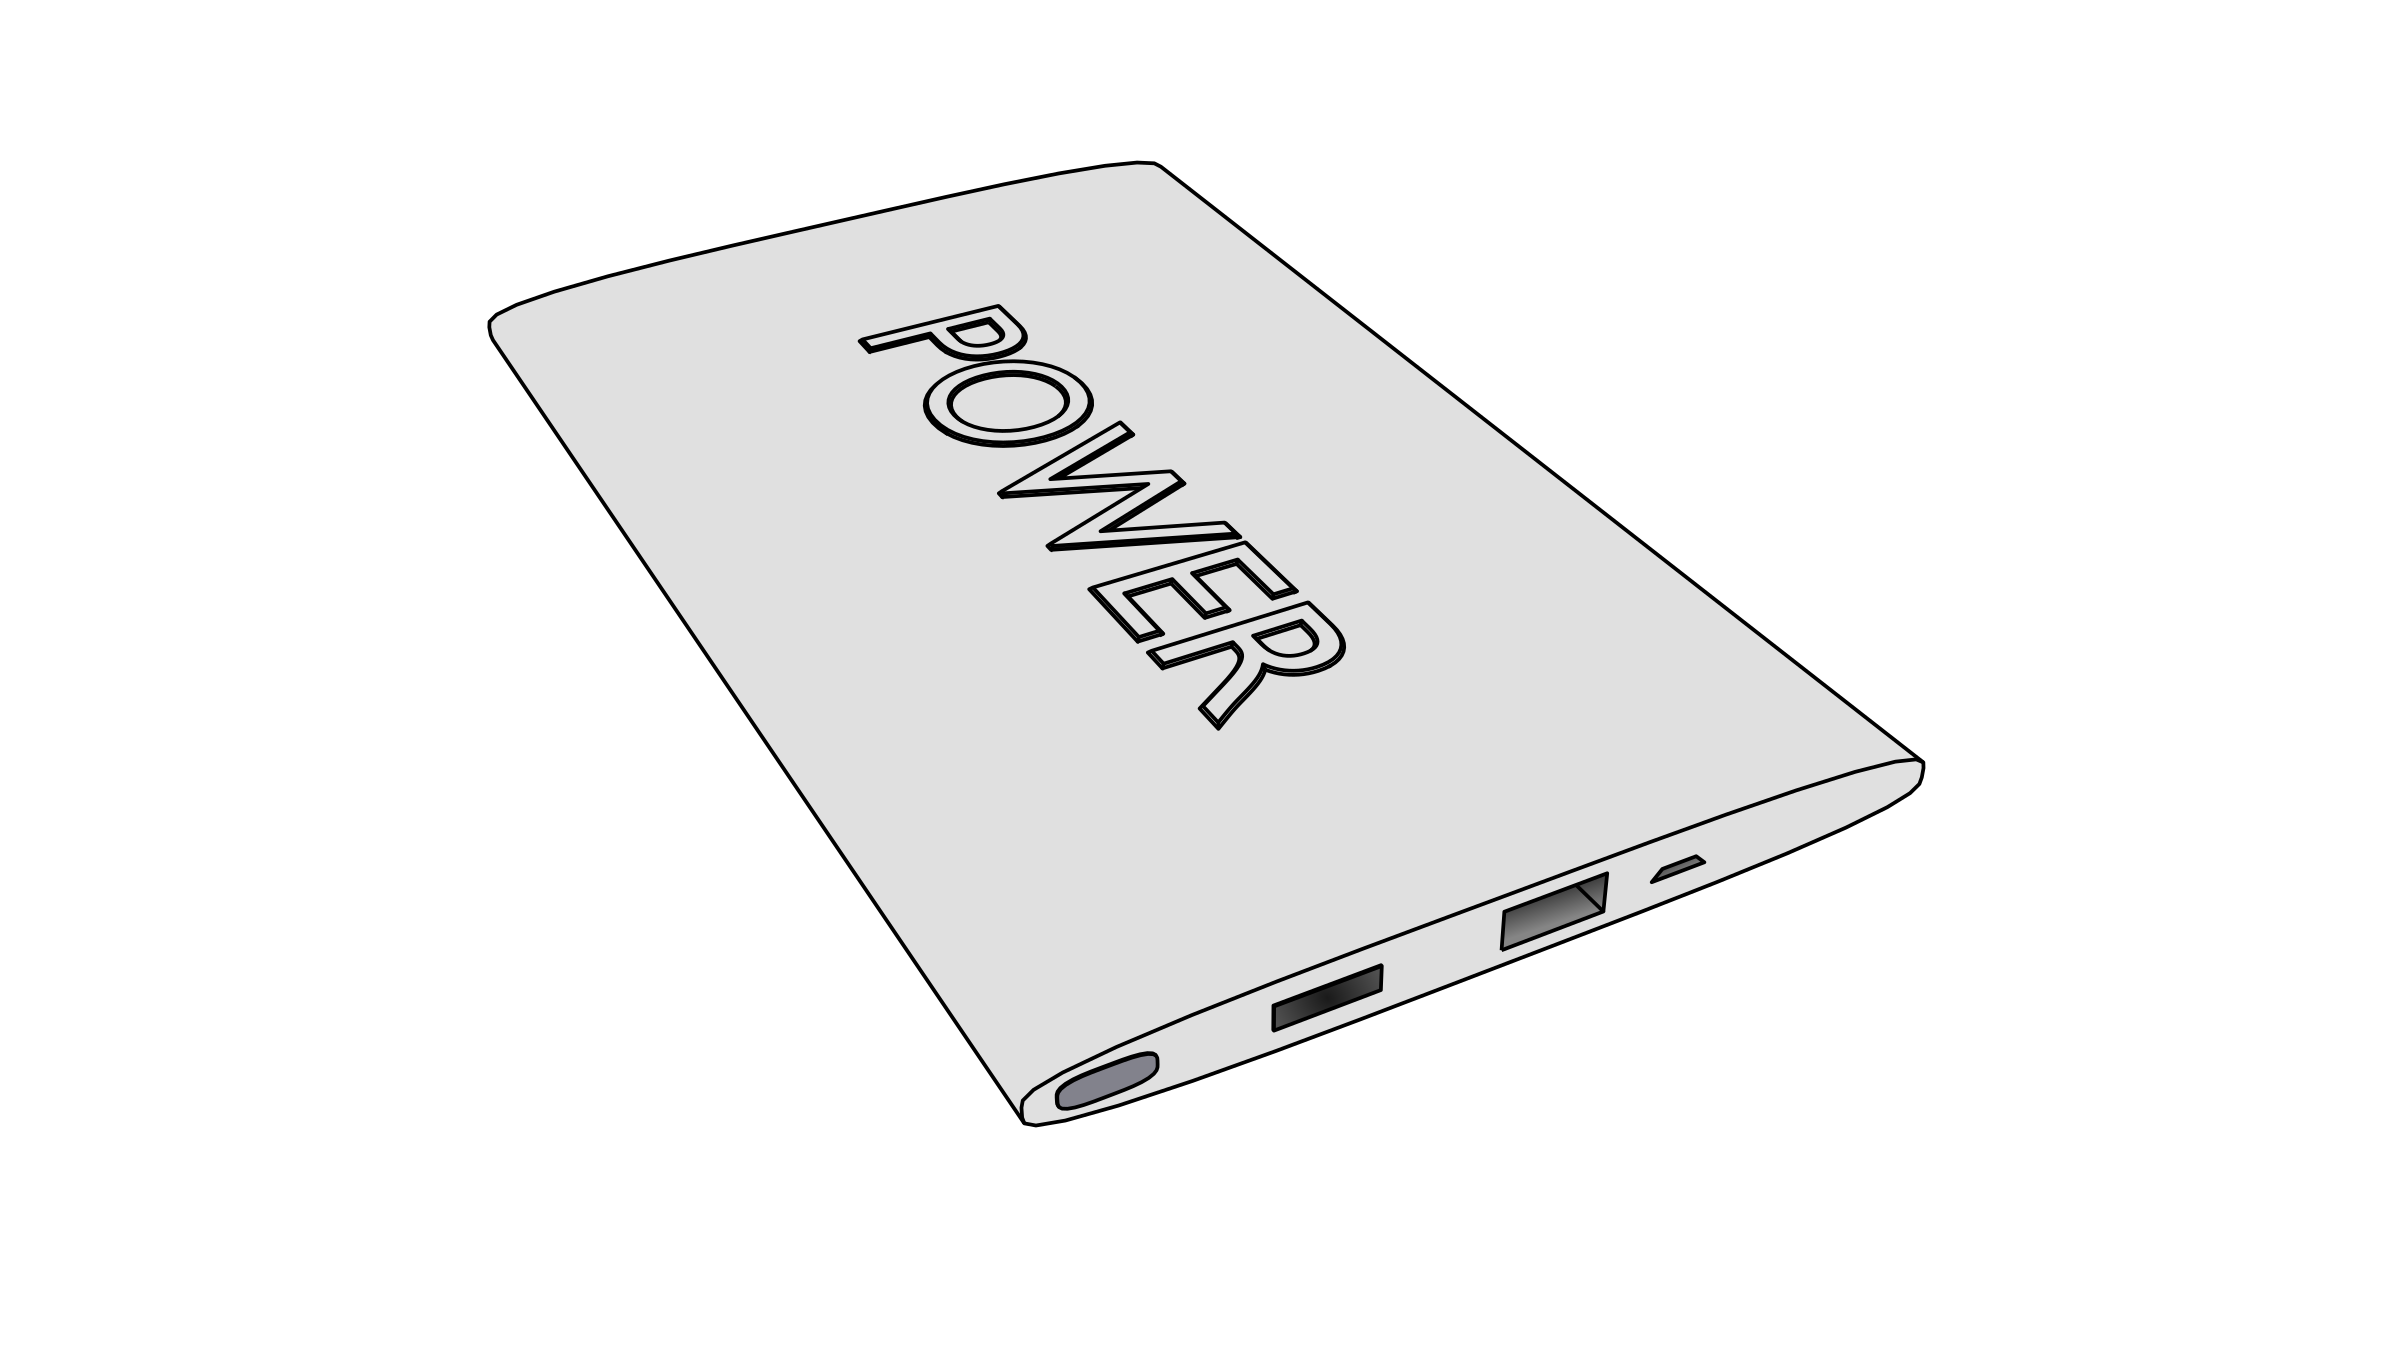 3D power bank by photofree.ga